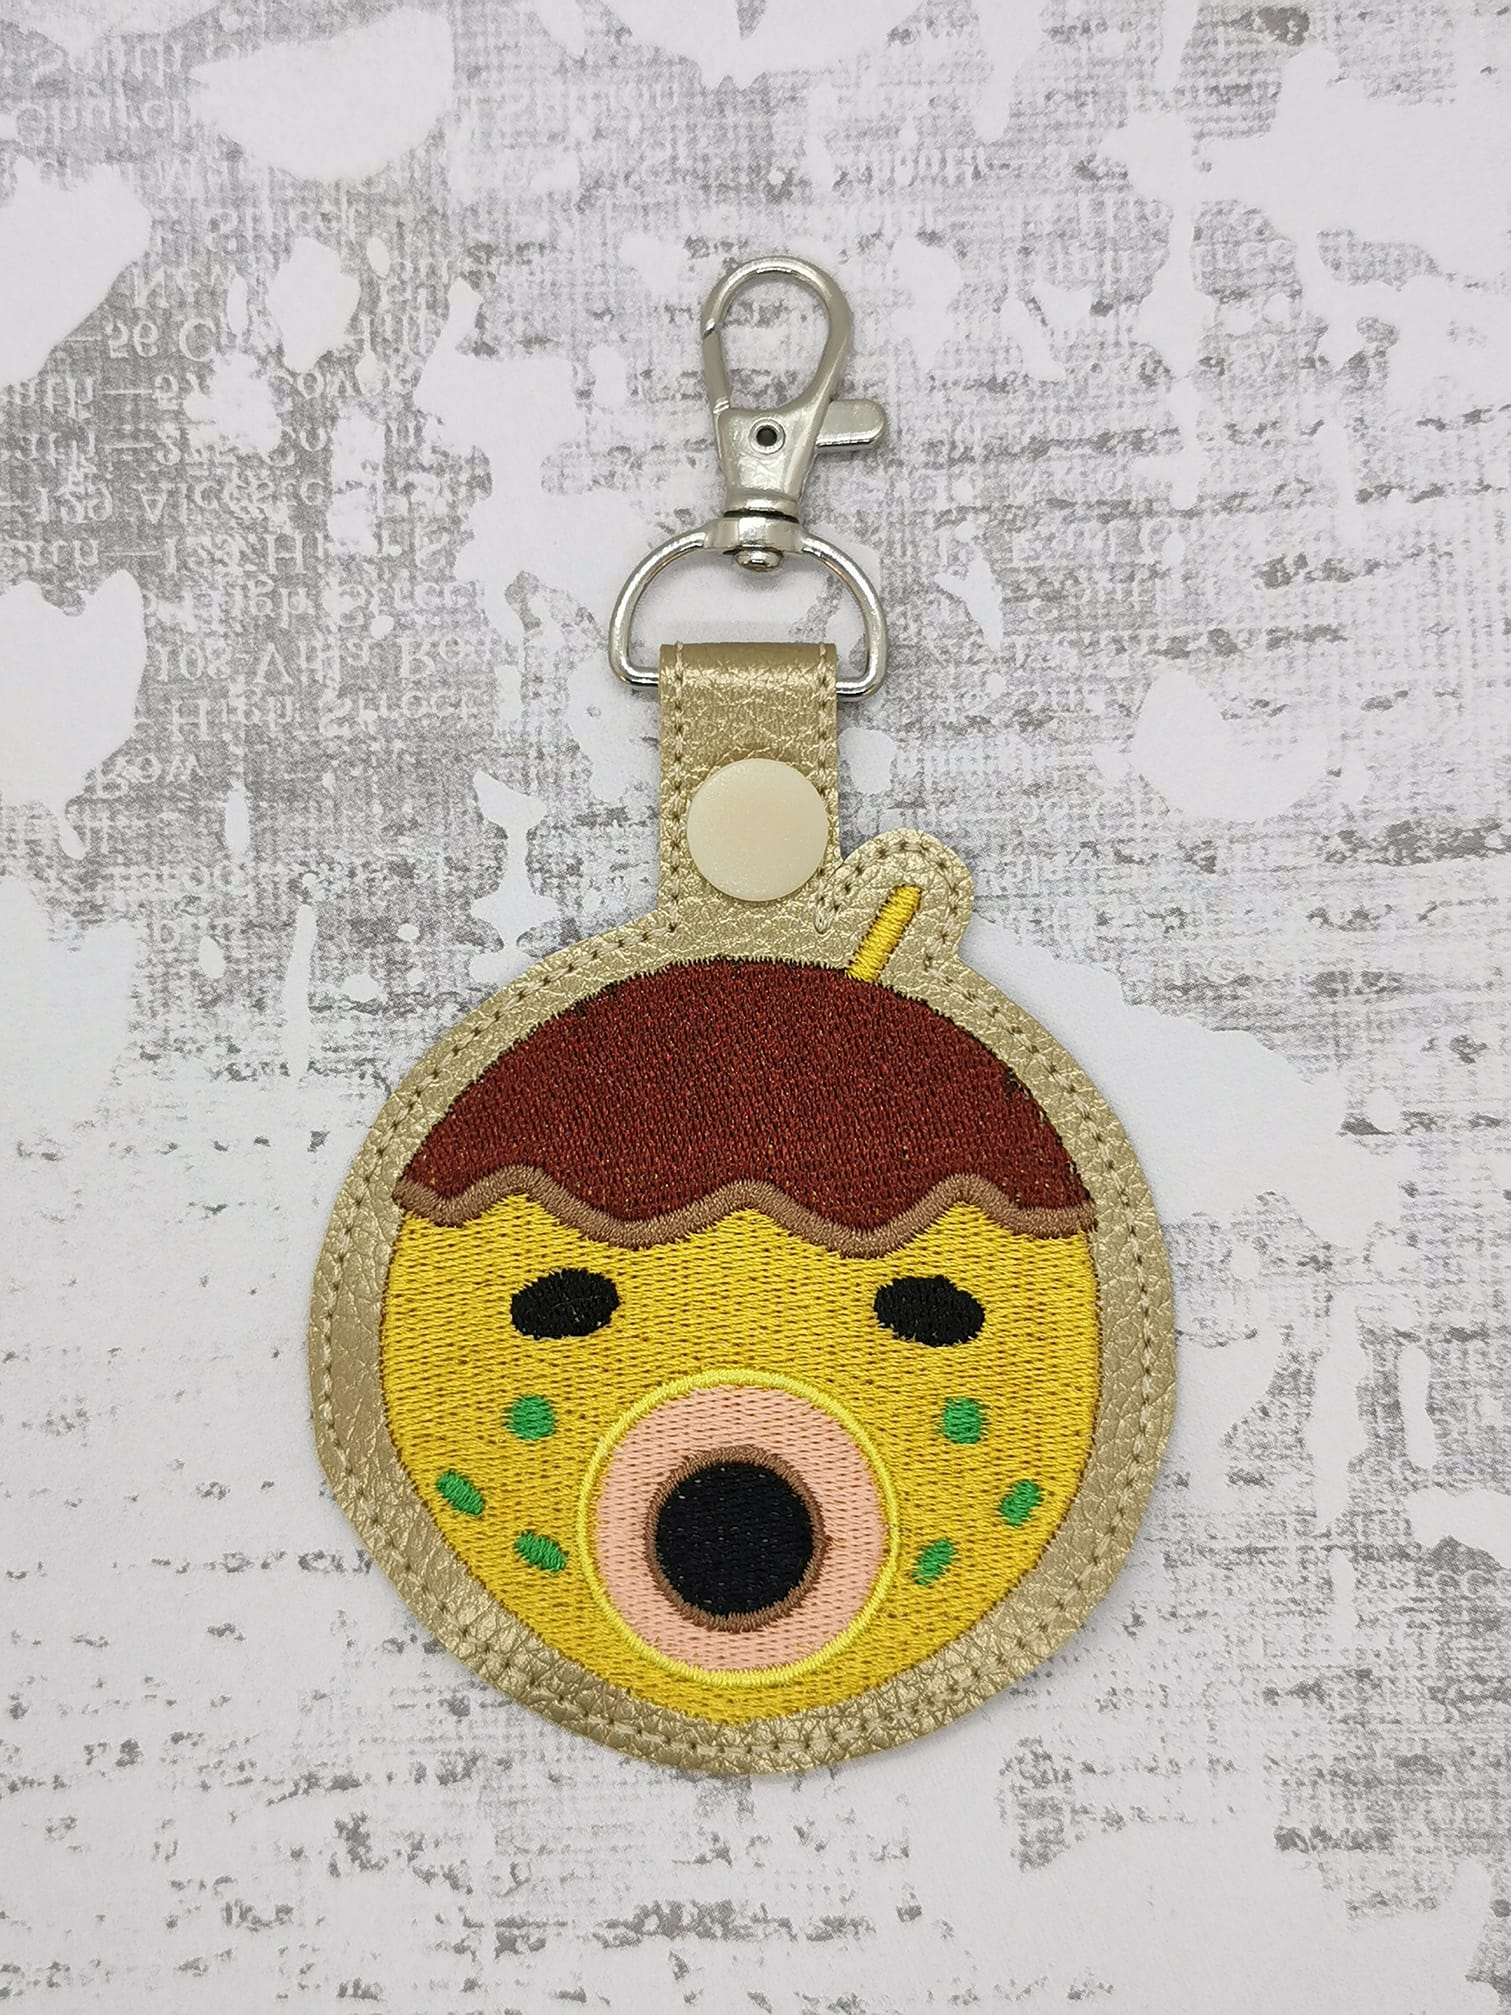 Zucker from Animal Crossing Snaptab / Keyfob Embroidery Design